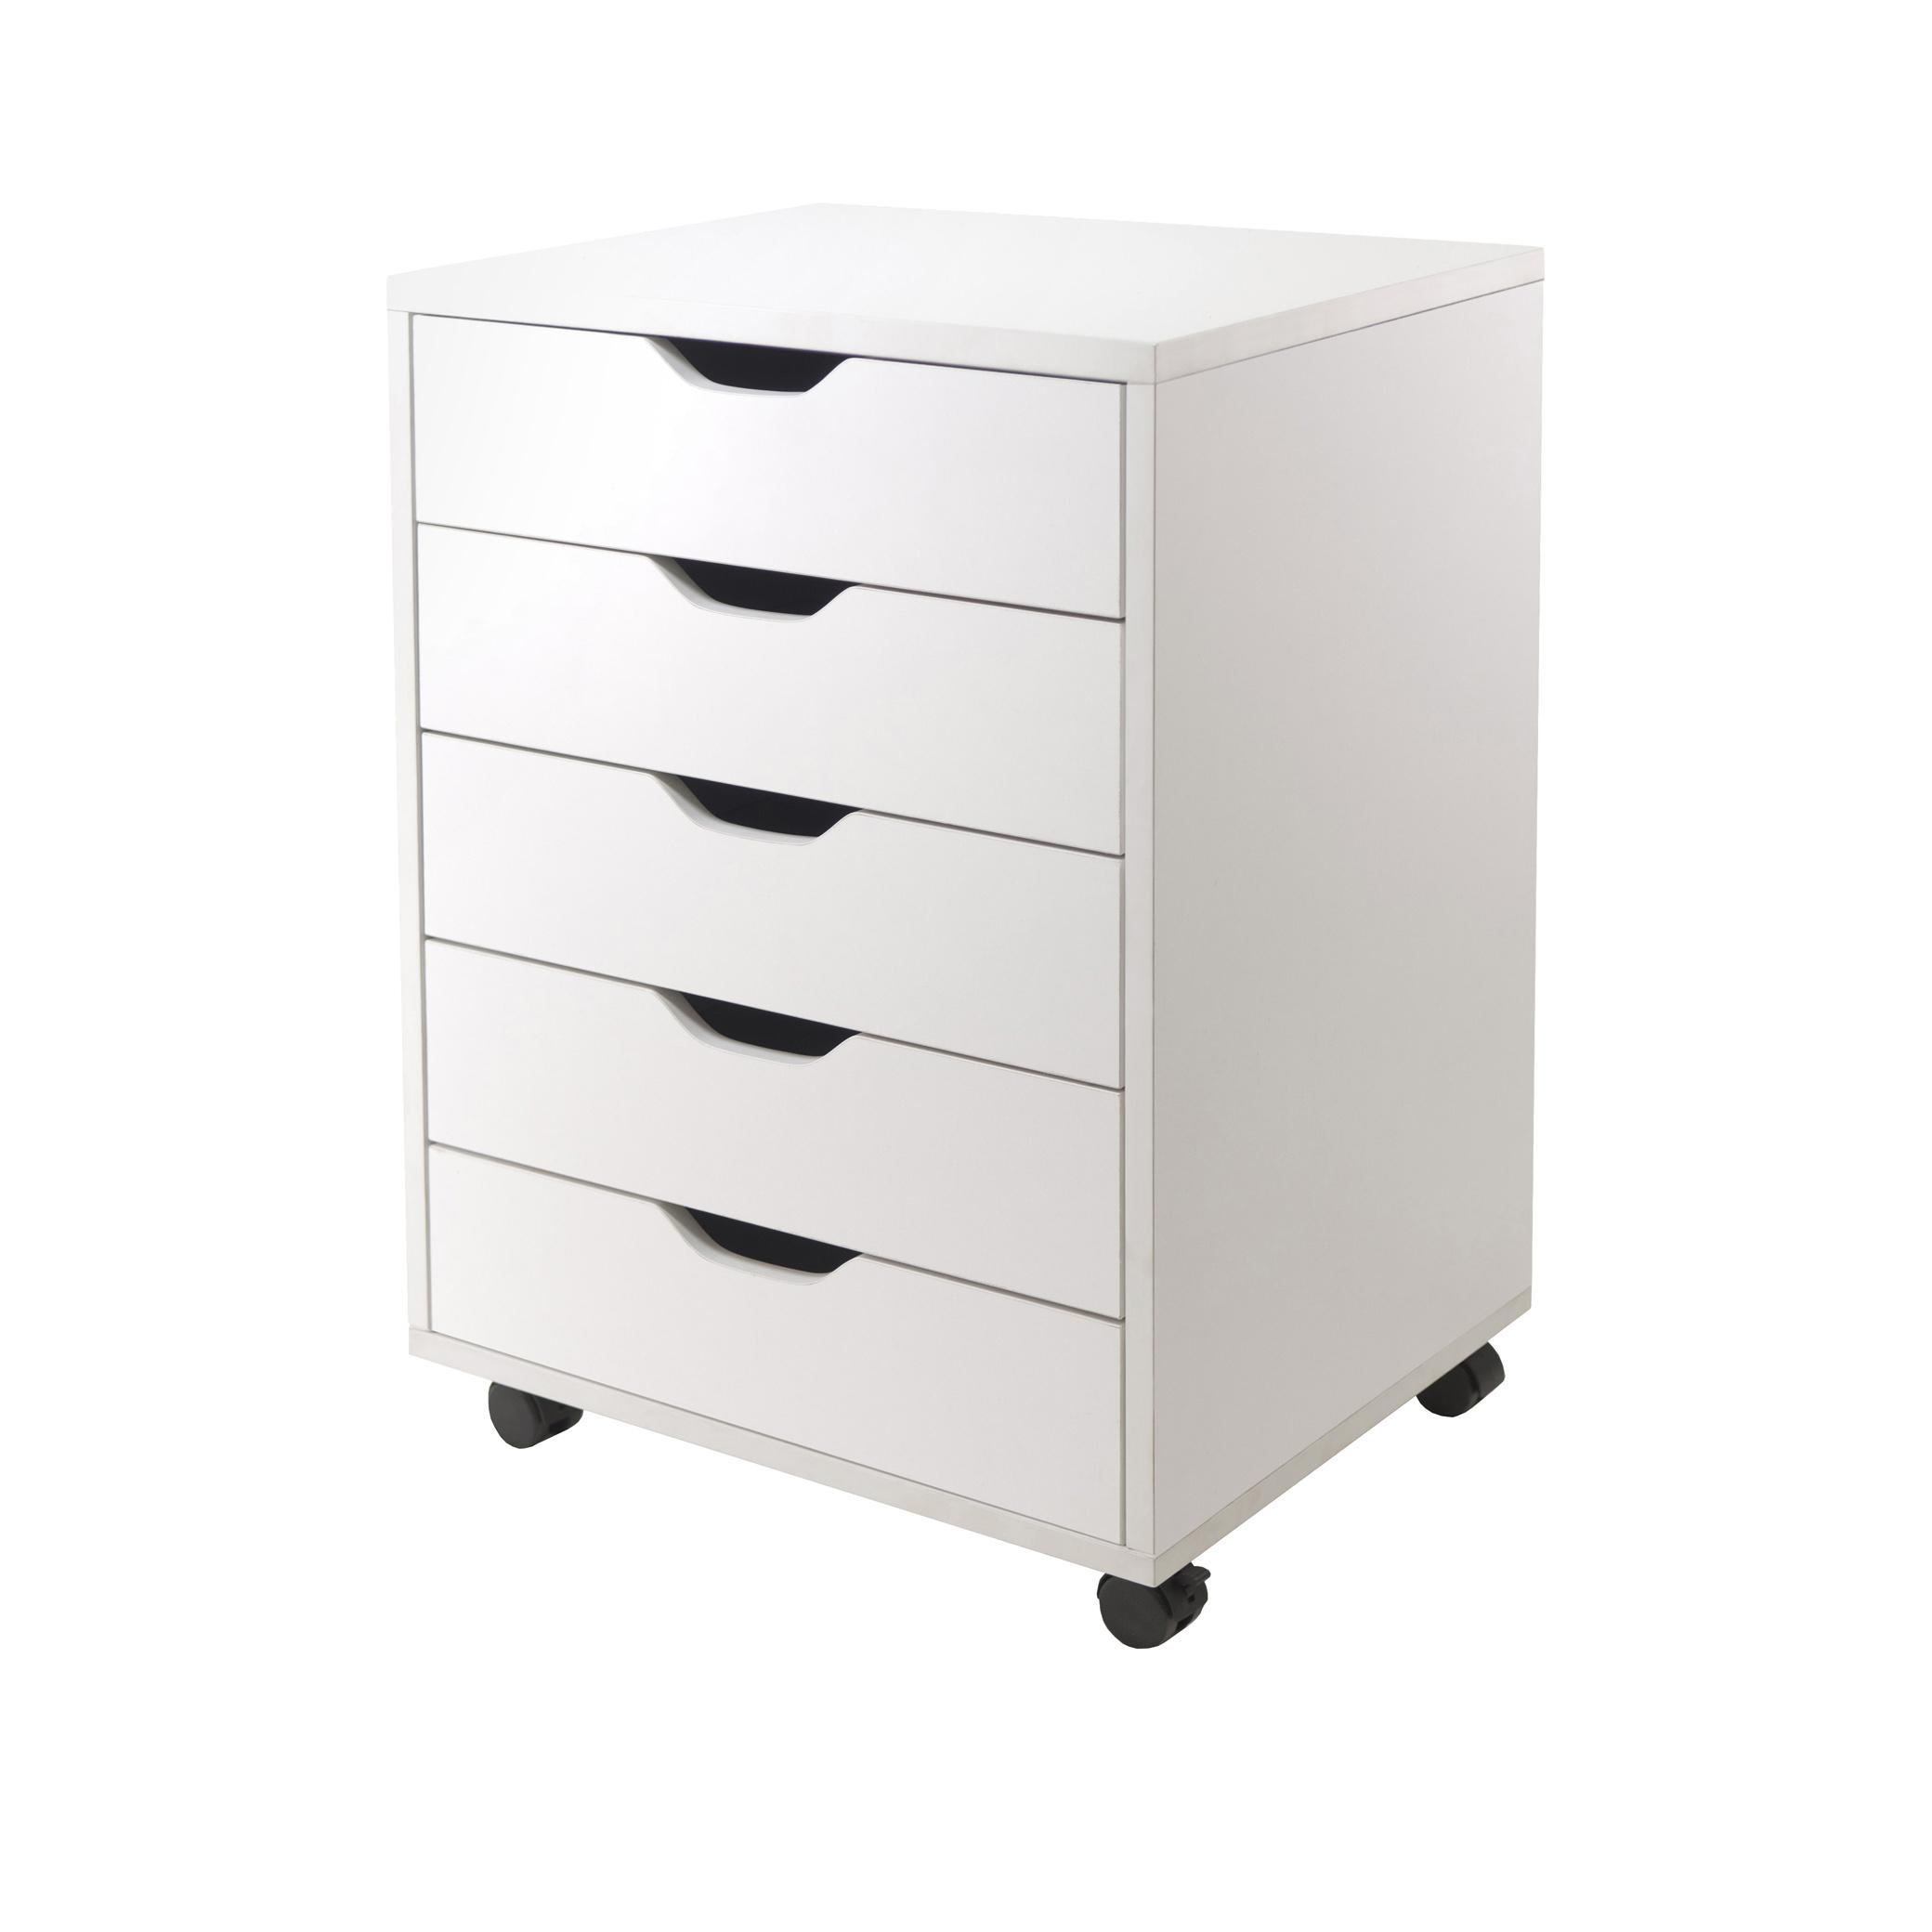 ikea storage plan cabinet in cabinets wood india simple with drawers furniture white bedroom uk wall